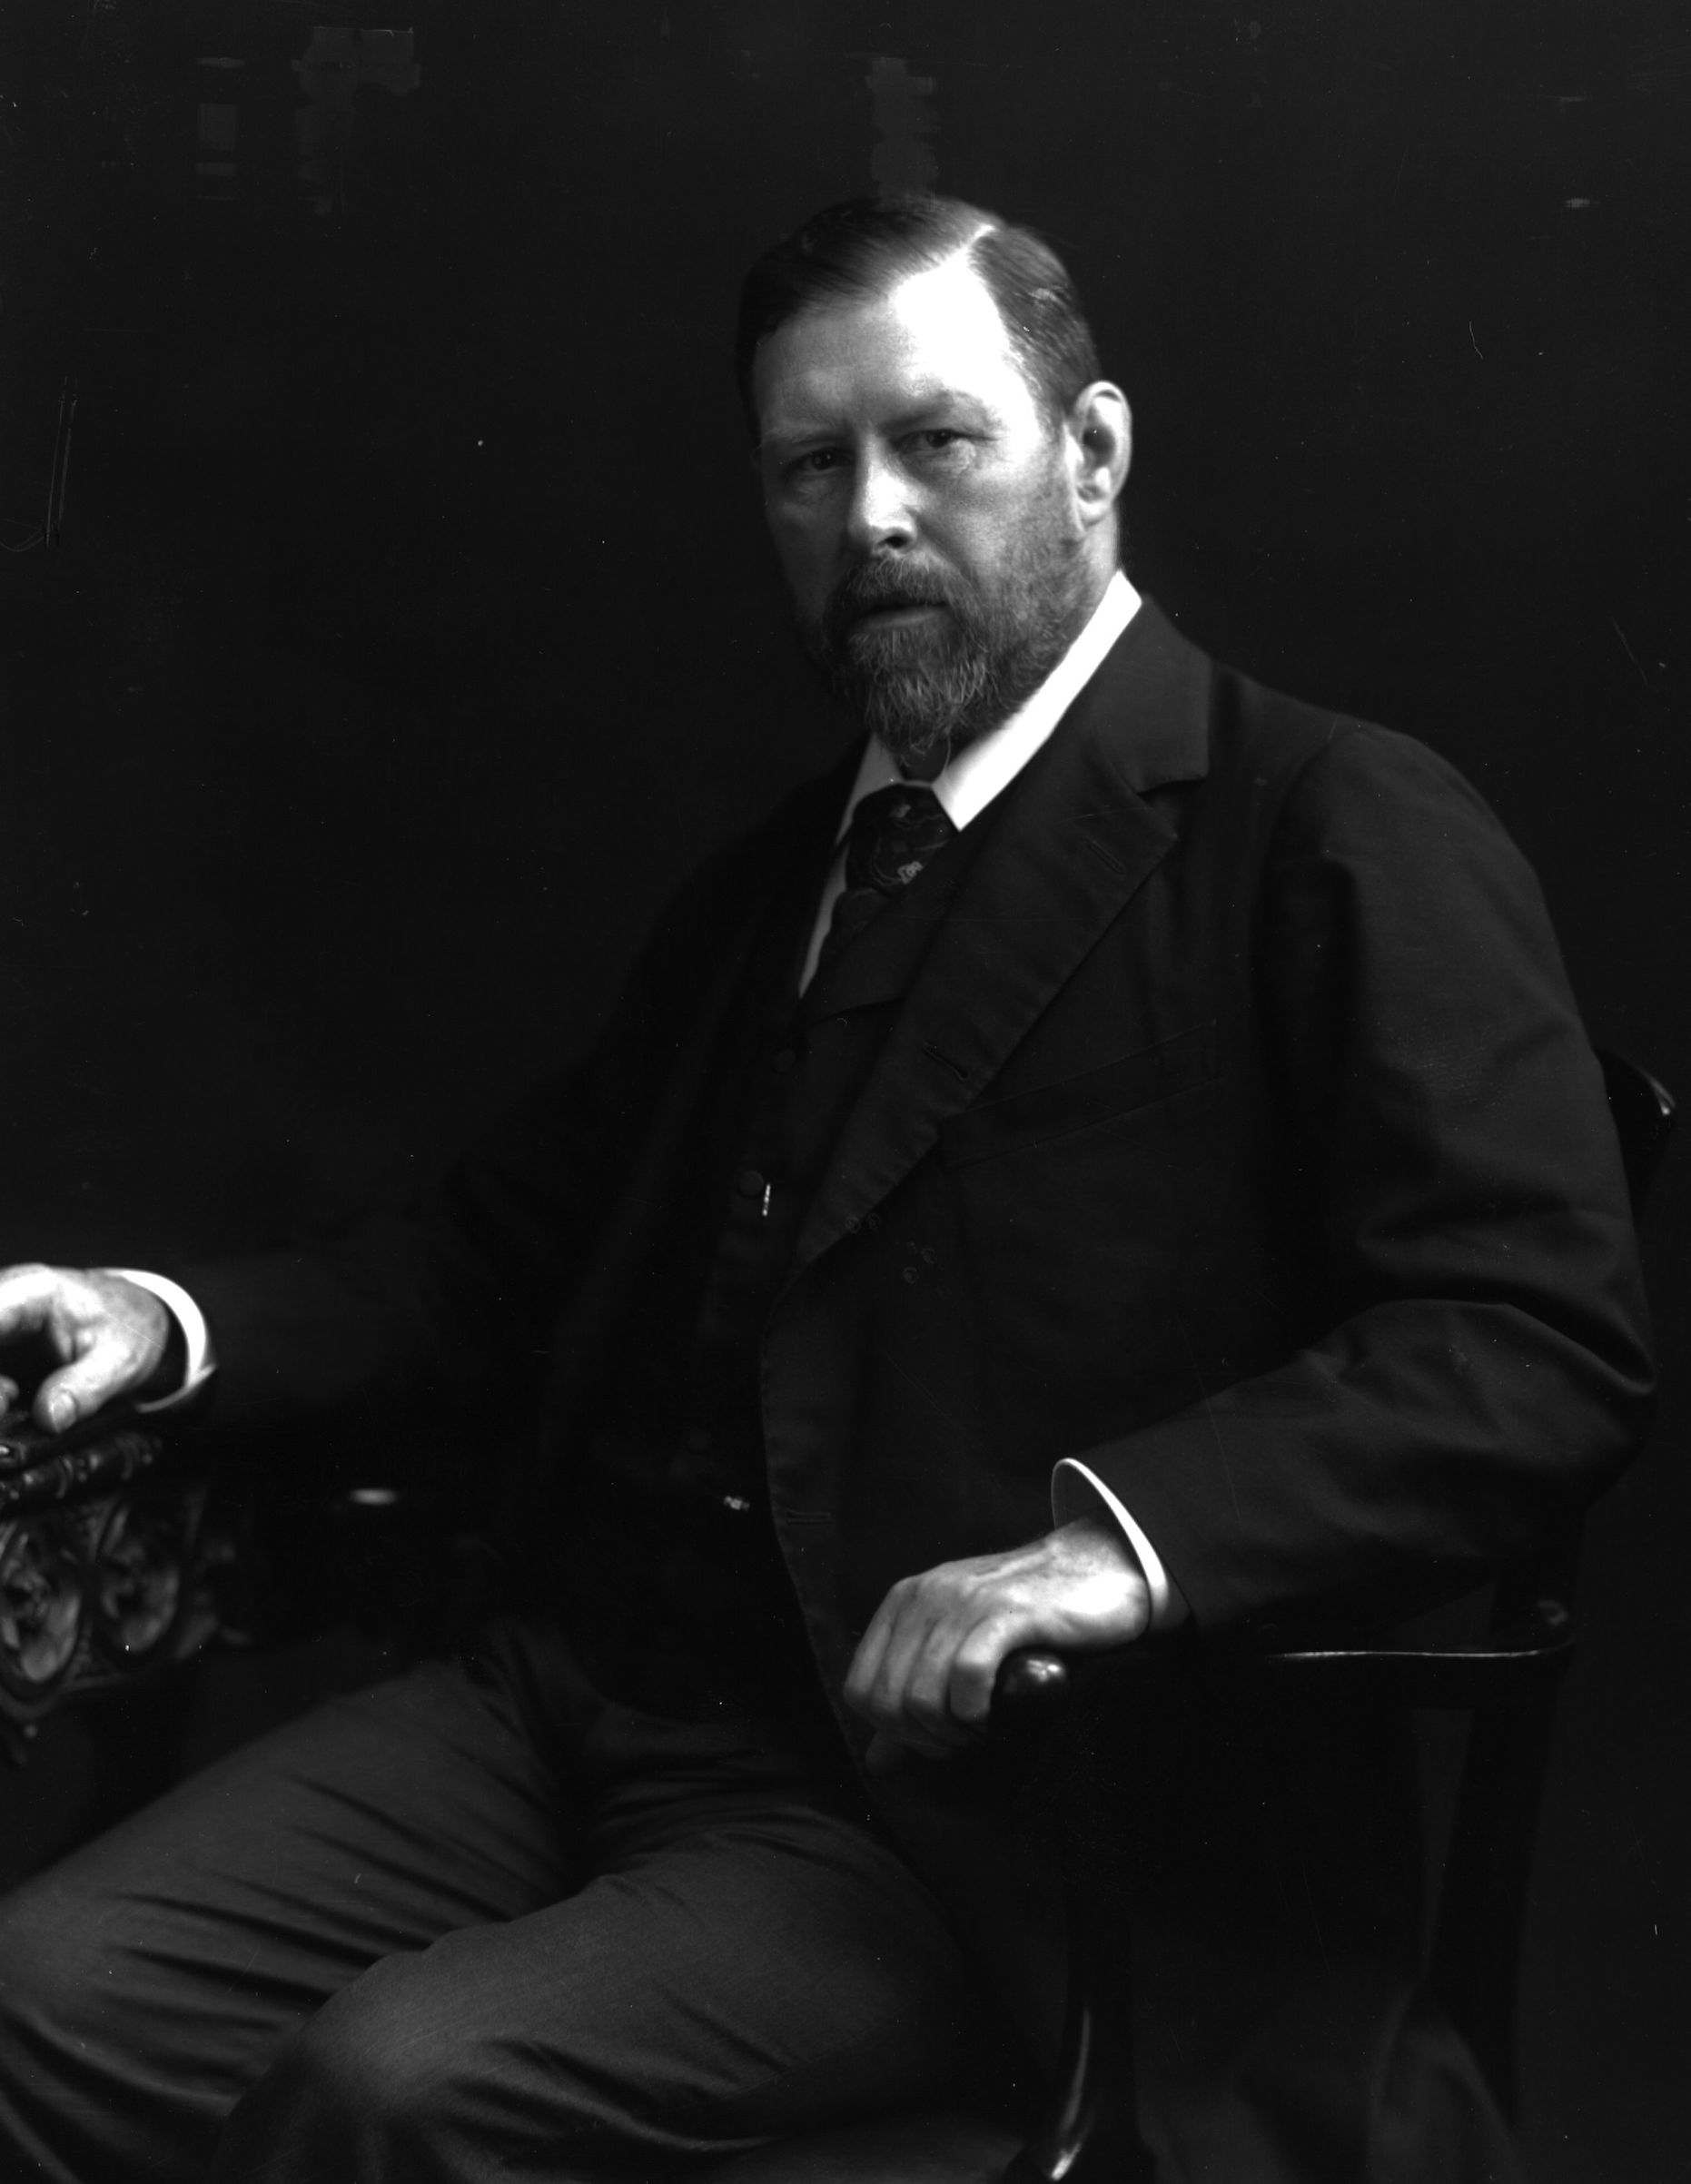 Abraham Stoker (1845 - 1912) the Irish writer who  wrote the classic horror story 'Dracula' in 1897.